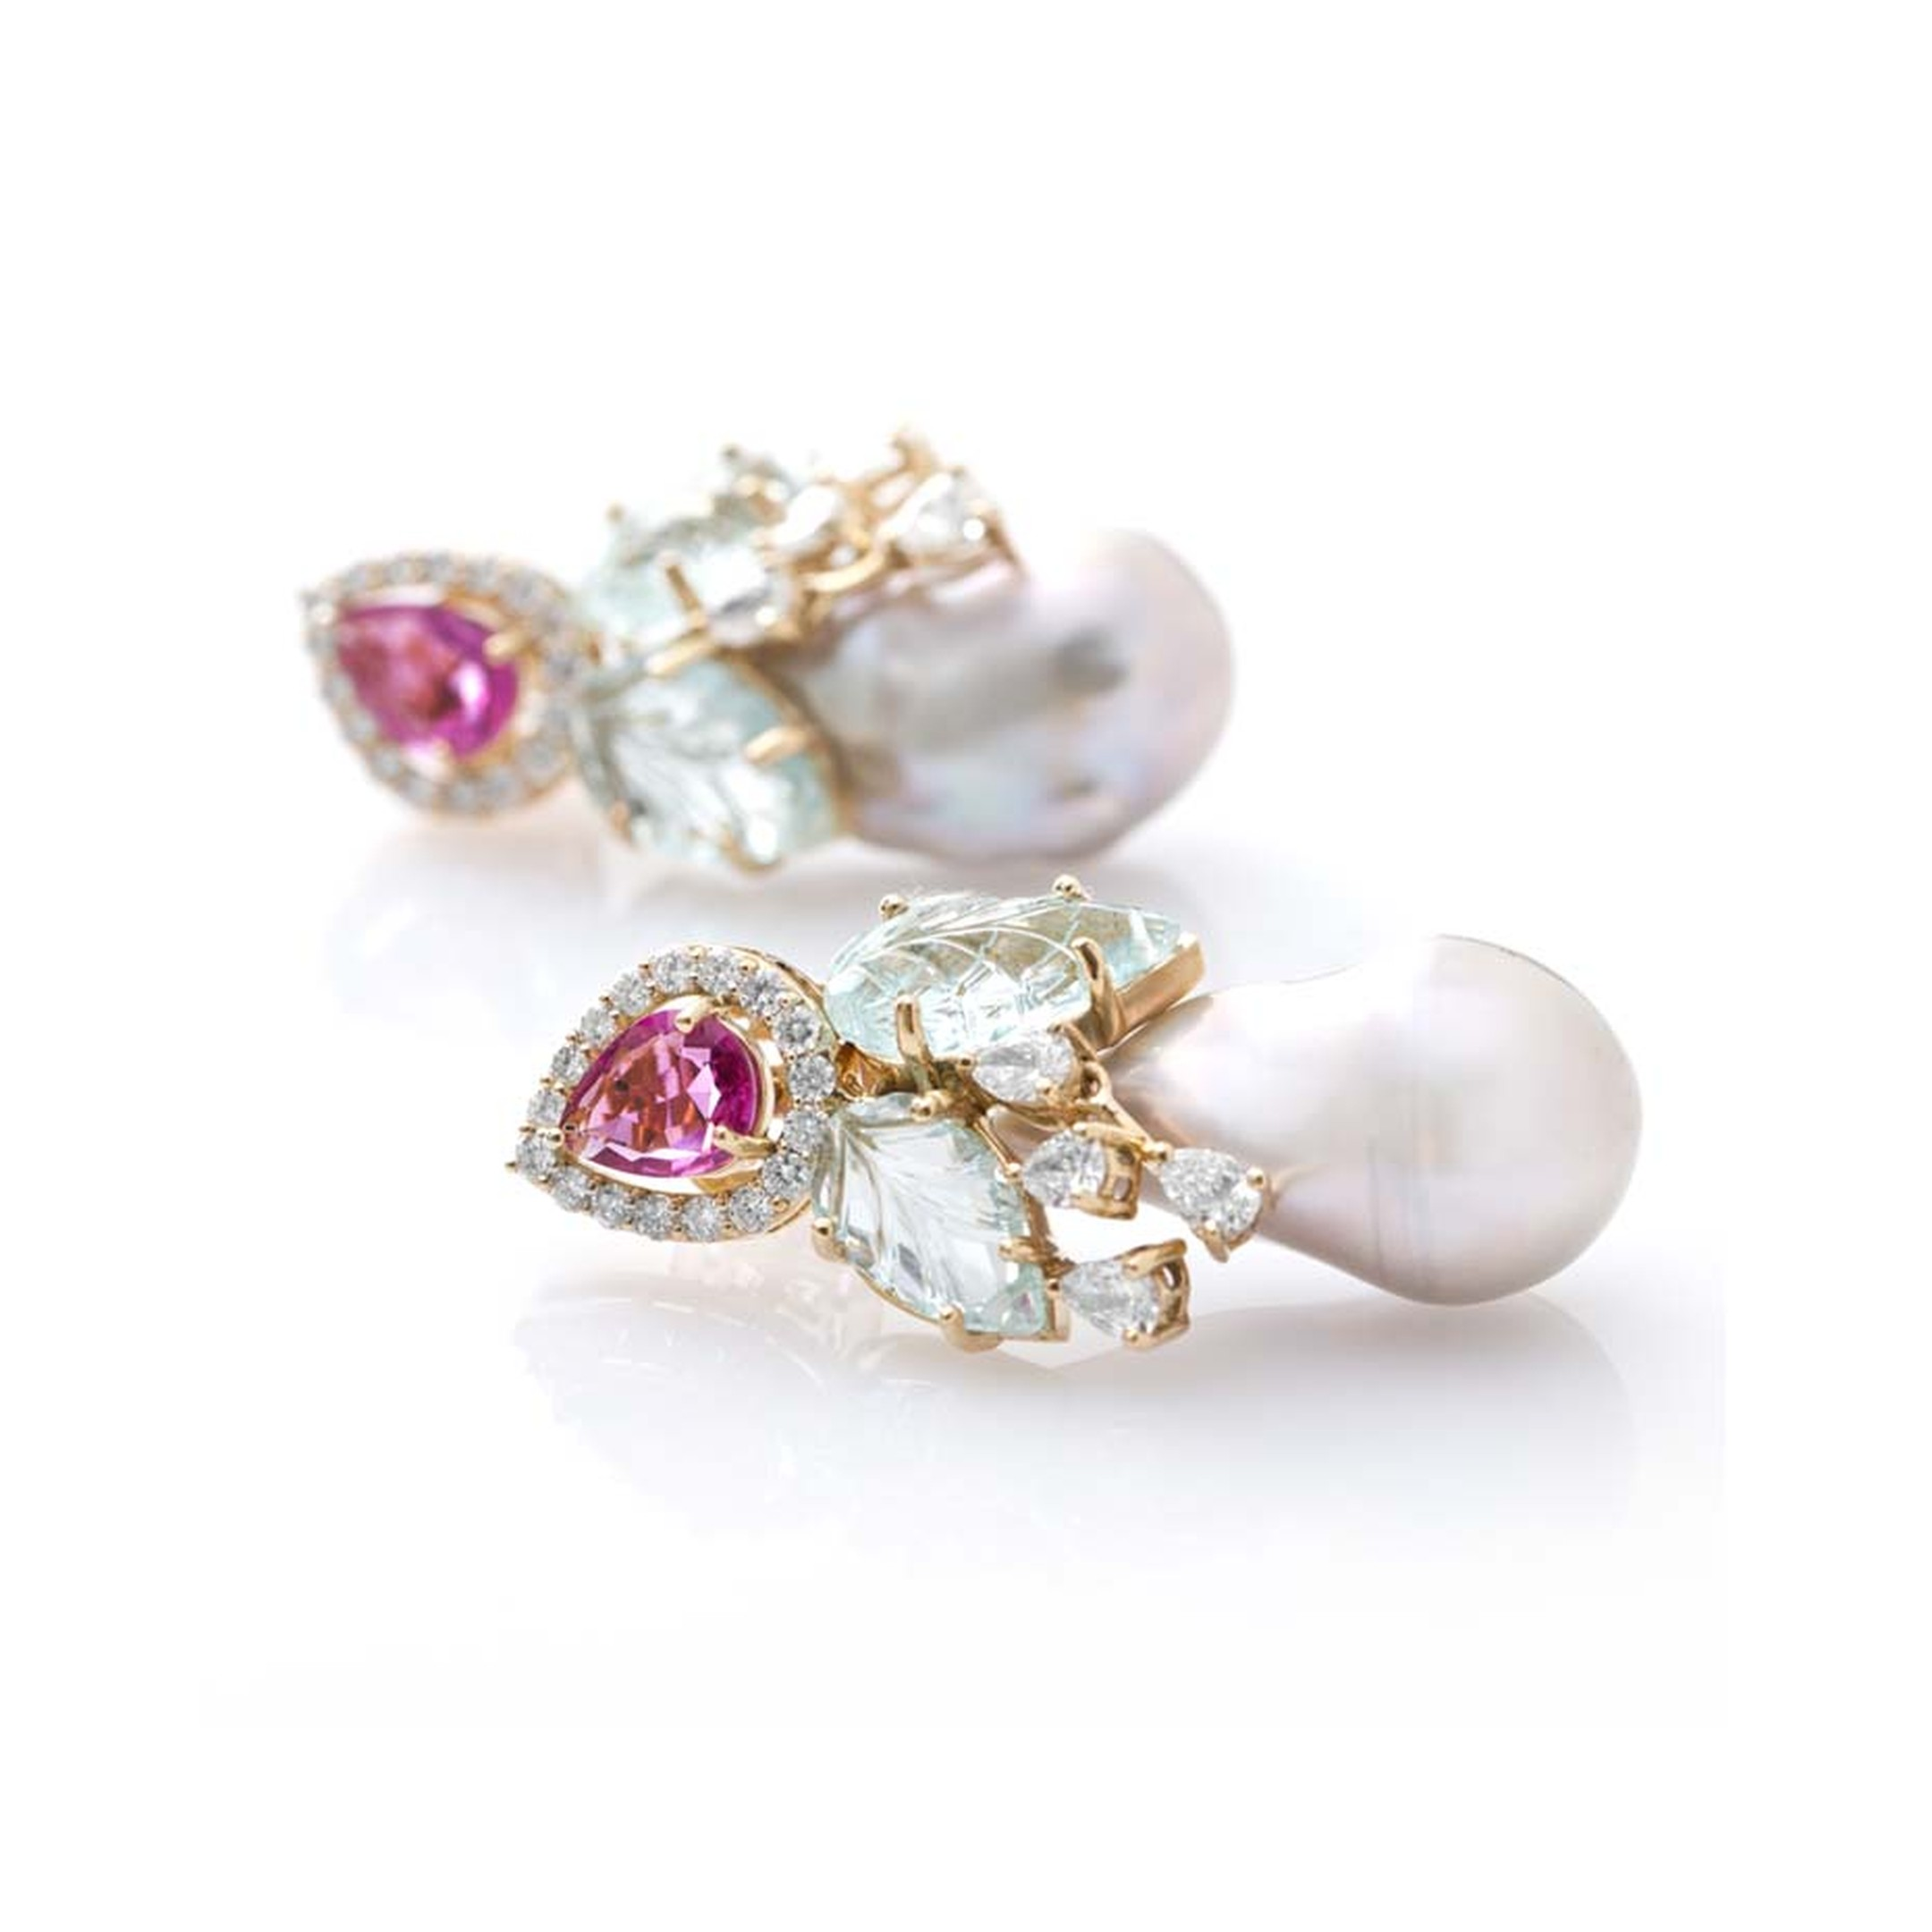 Fahra Khan_Le Jardin Exotique_Baroque pearl earrings in 18ct yellow gold with rubellite, carved leaf aquamarines and diamonds by Farah Khan jewellery.jpg